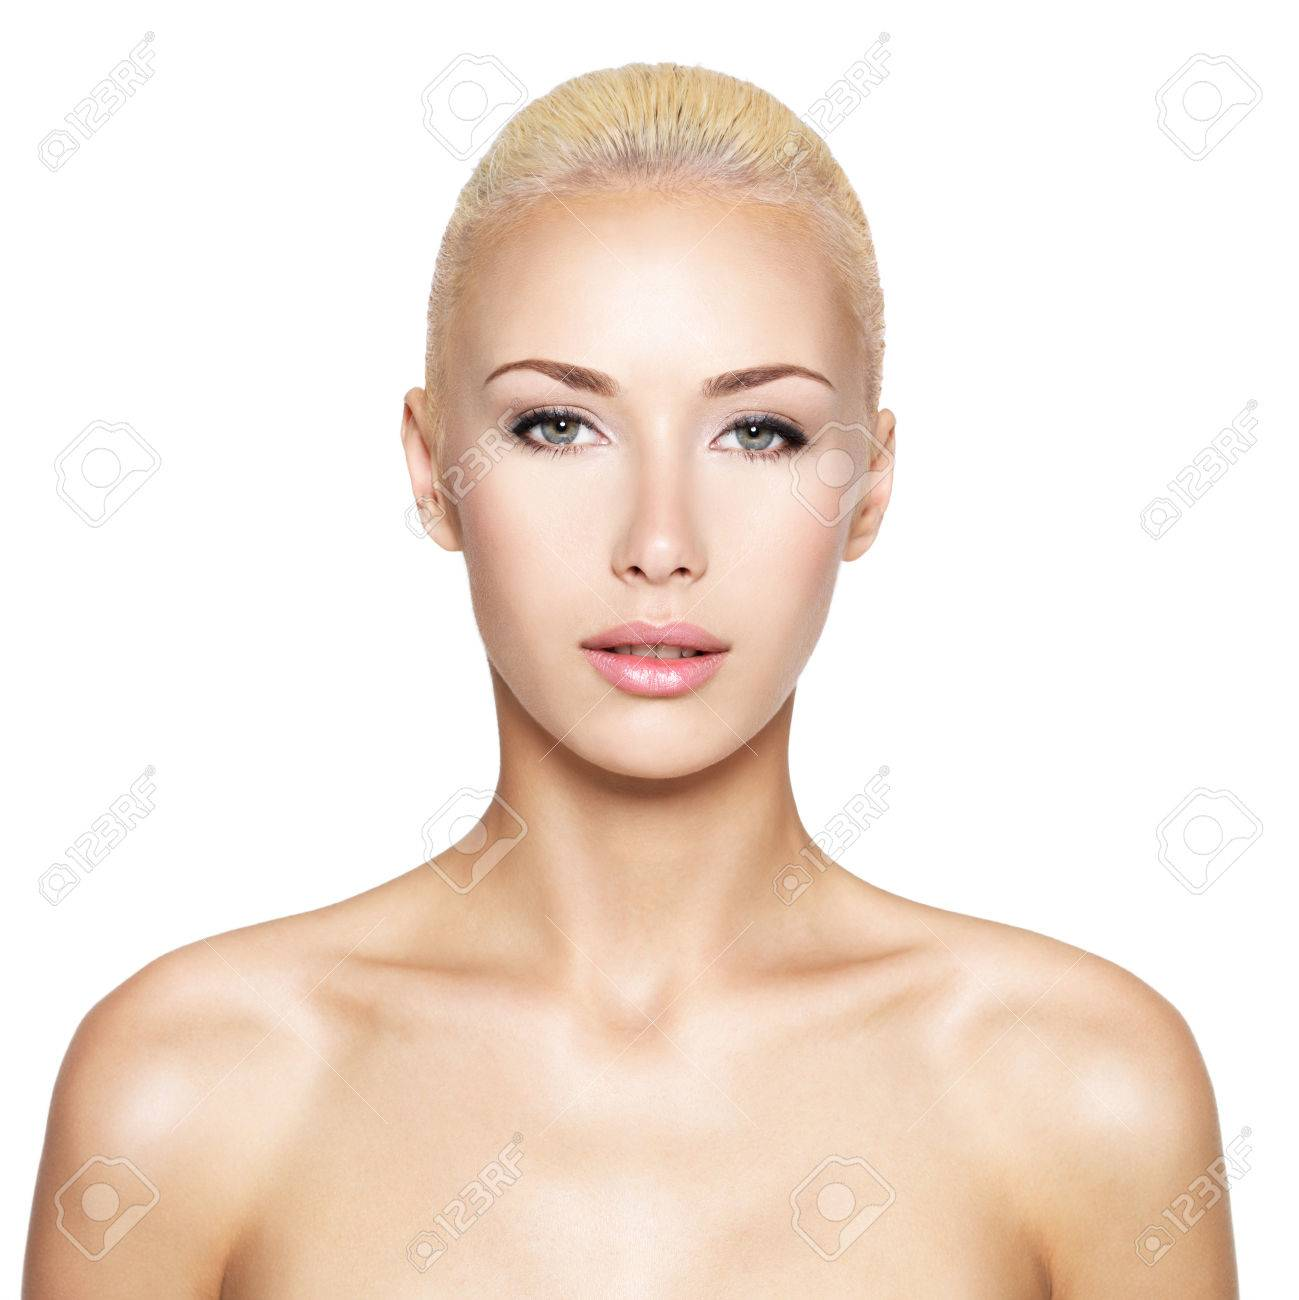 Front portrait of the blond woman with beauty face - isolated Stock Photo - 24246431